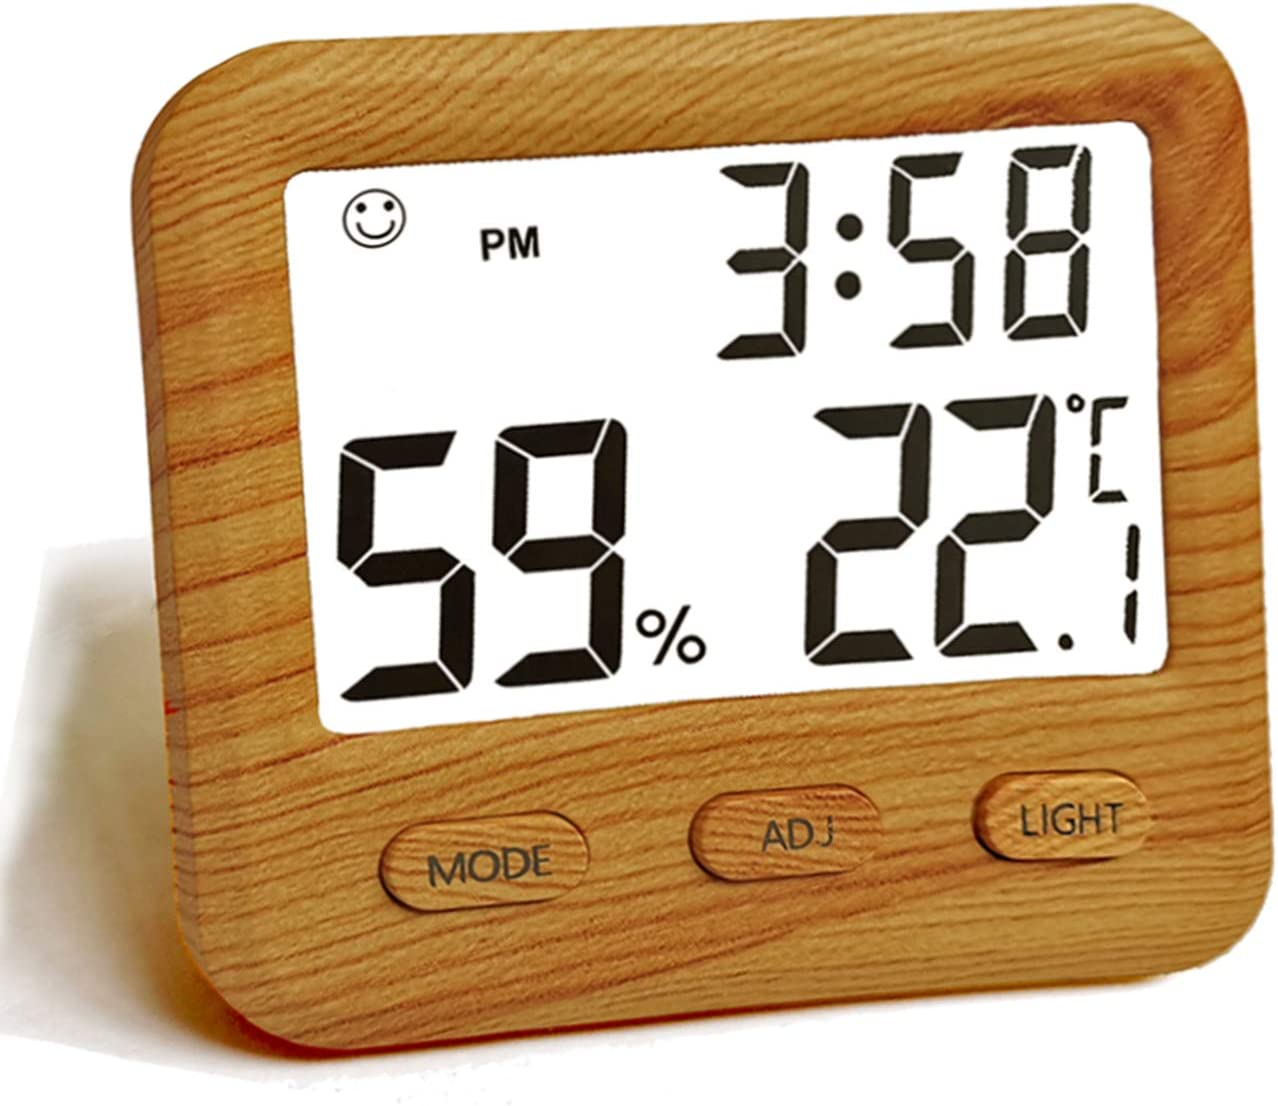 Digital Hygrometer Indoor Memphis Mall Thermometer Humidity Gaug Temperature Shipping included